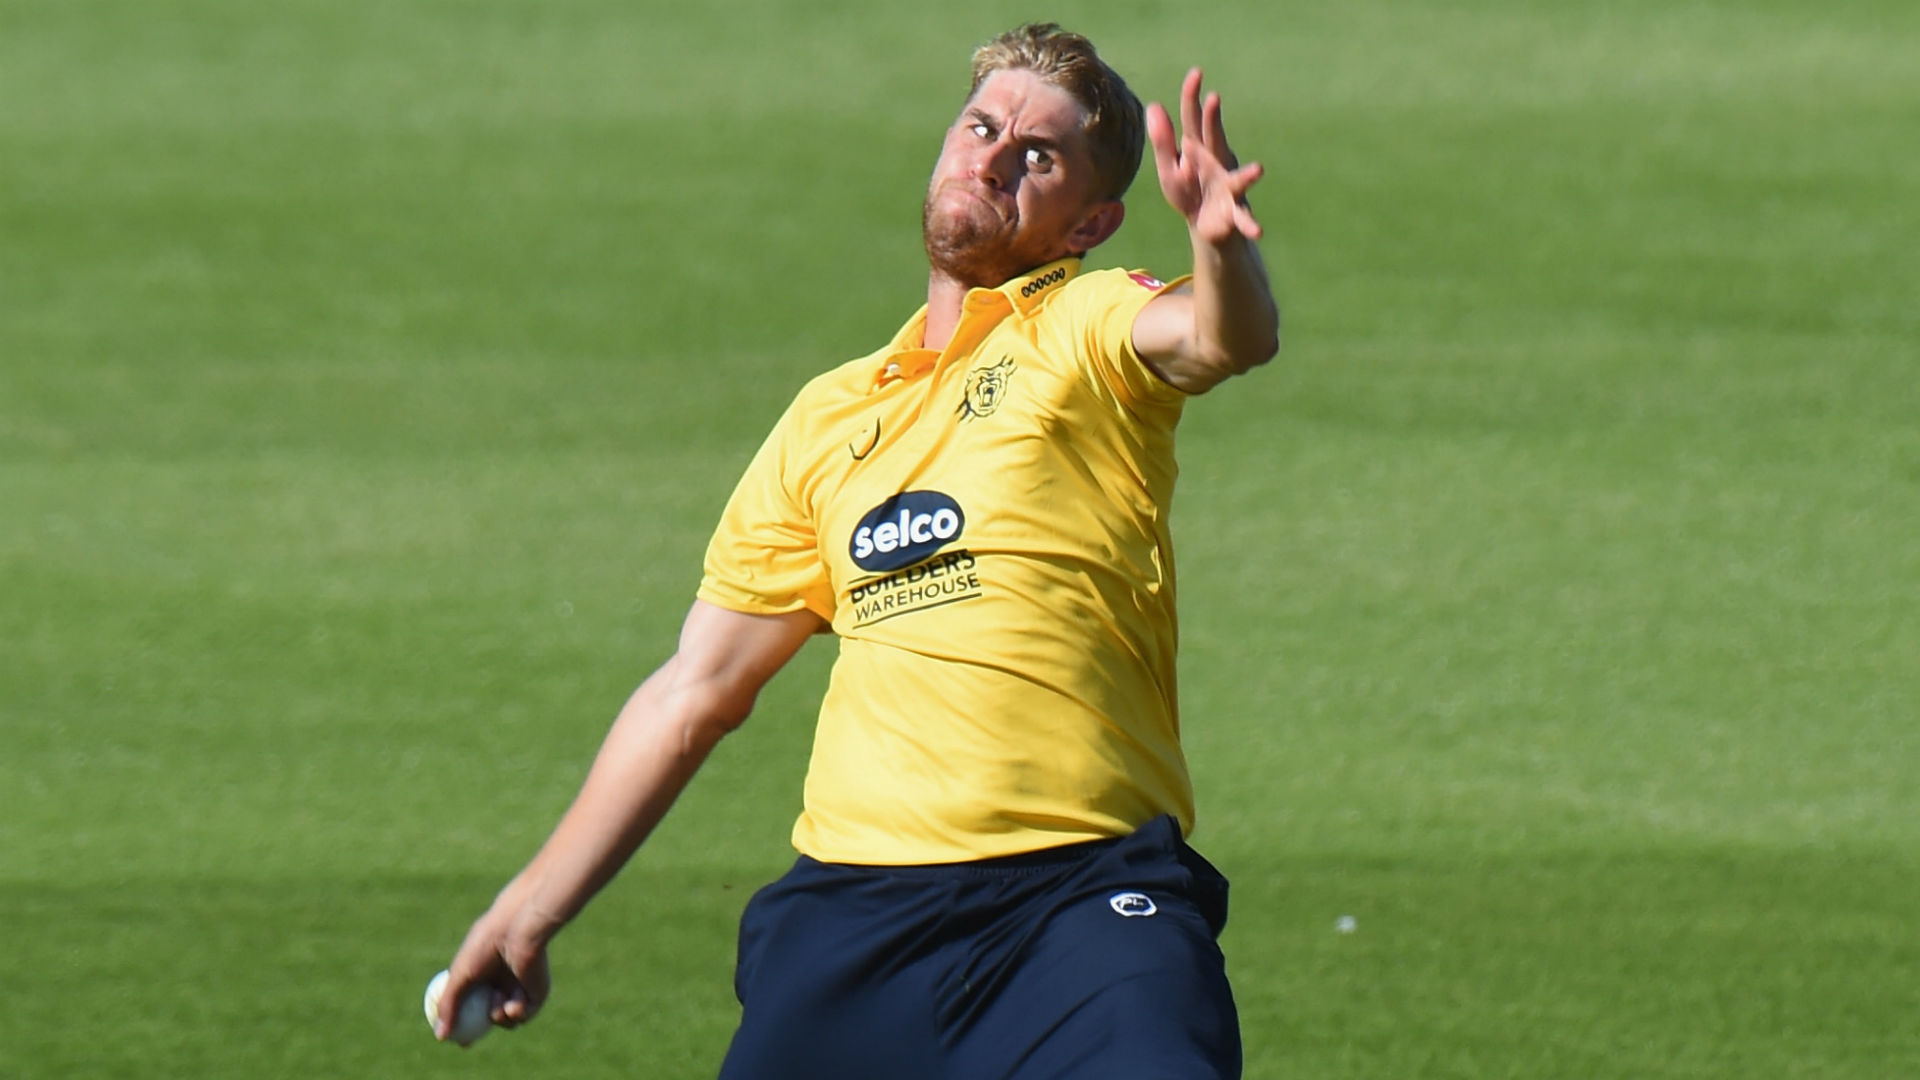 England include Stokes, Hales and uncapped seamer Stone in ODI squad